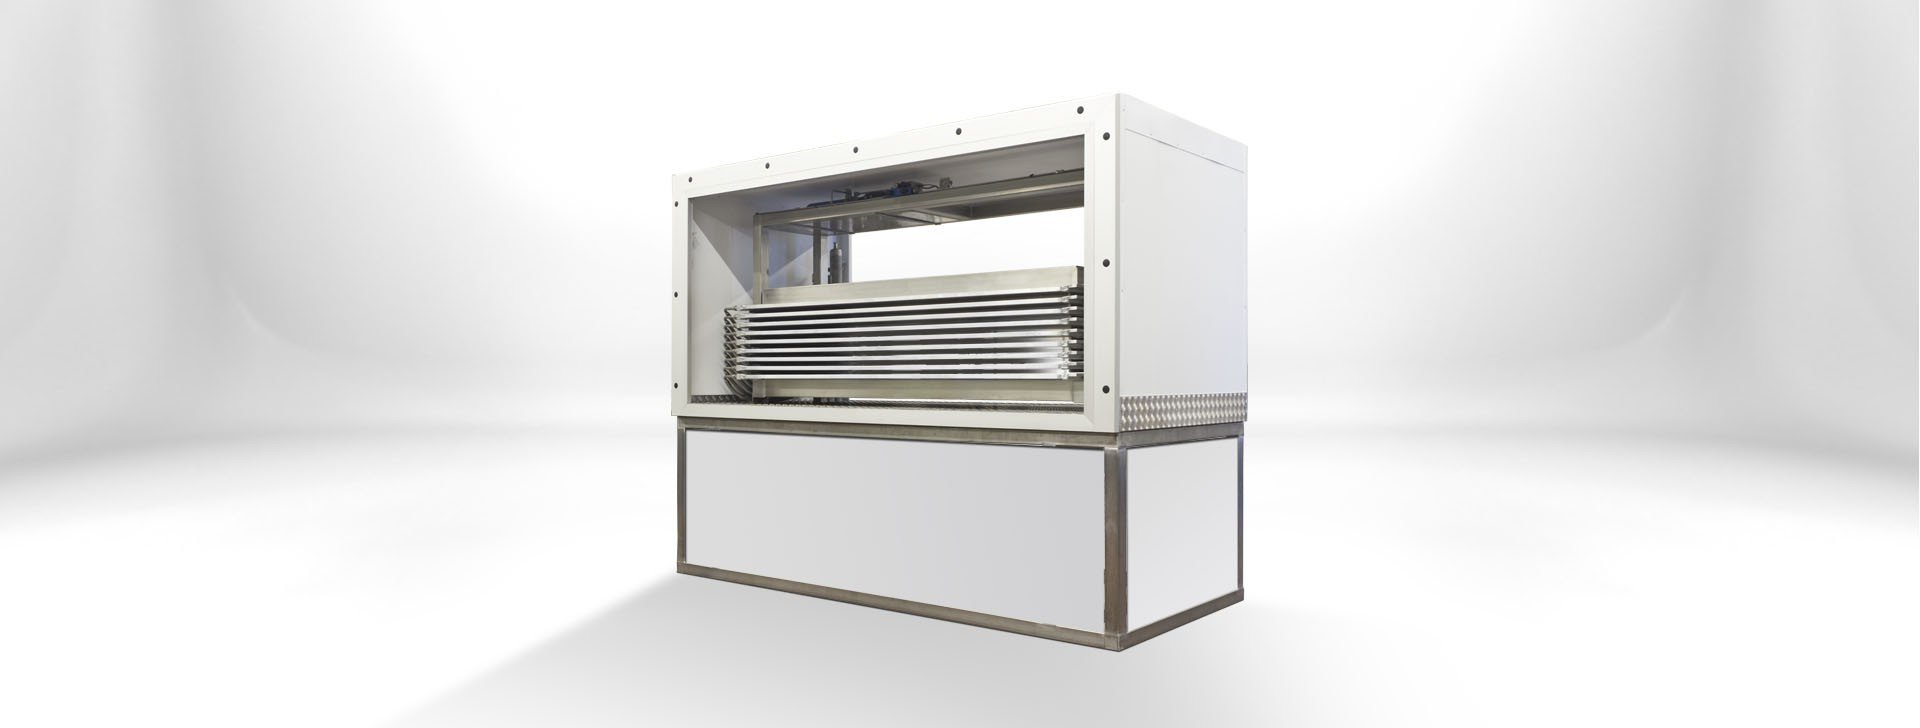 Plate Freezer Package Unit